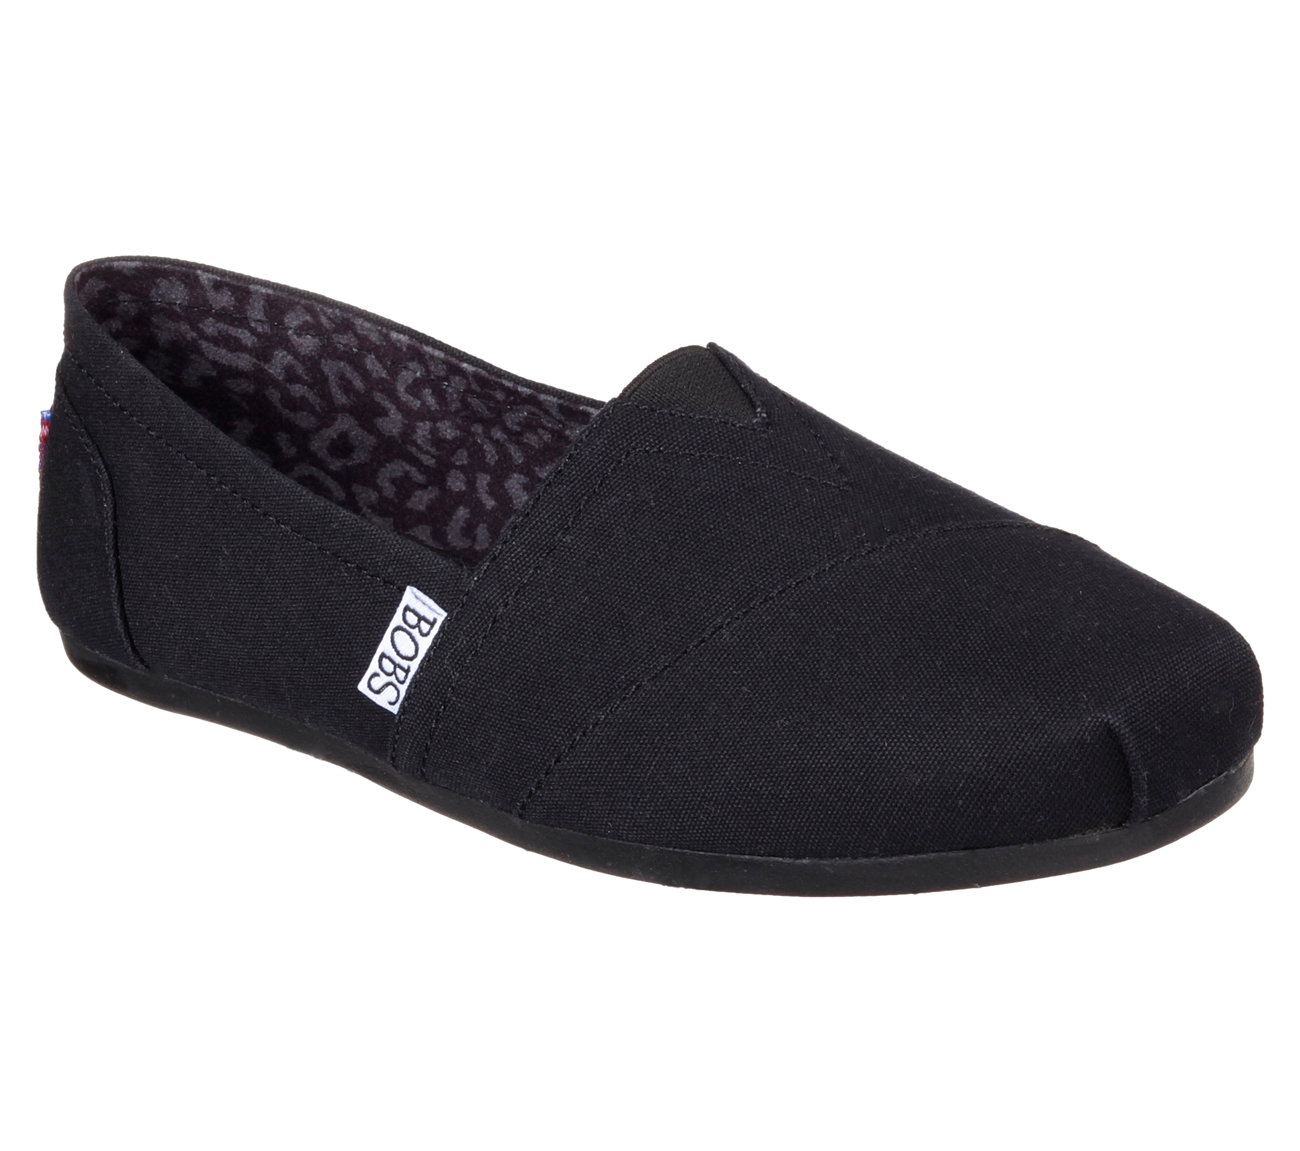 Where To Buy Bobs Shoes In Canada